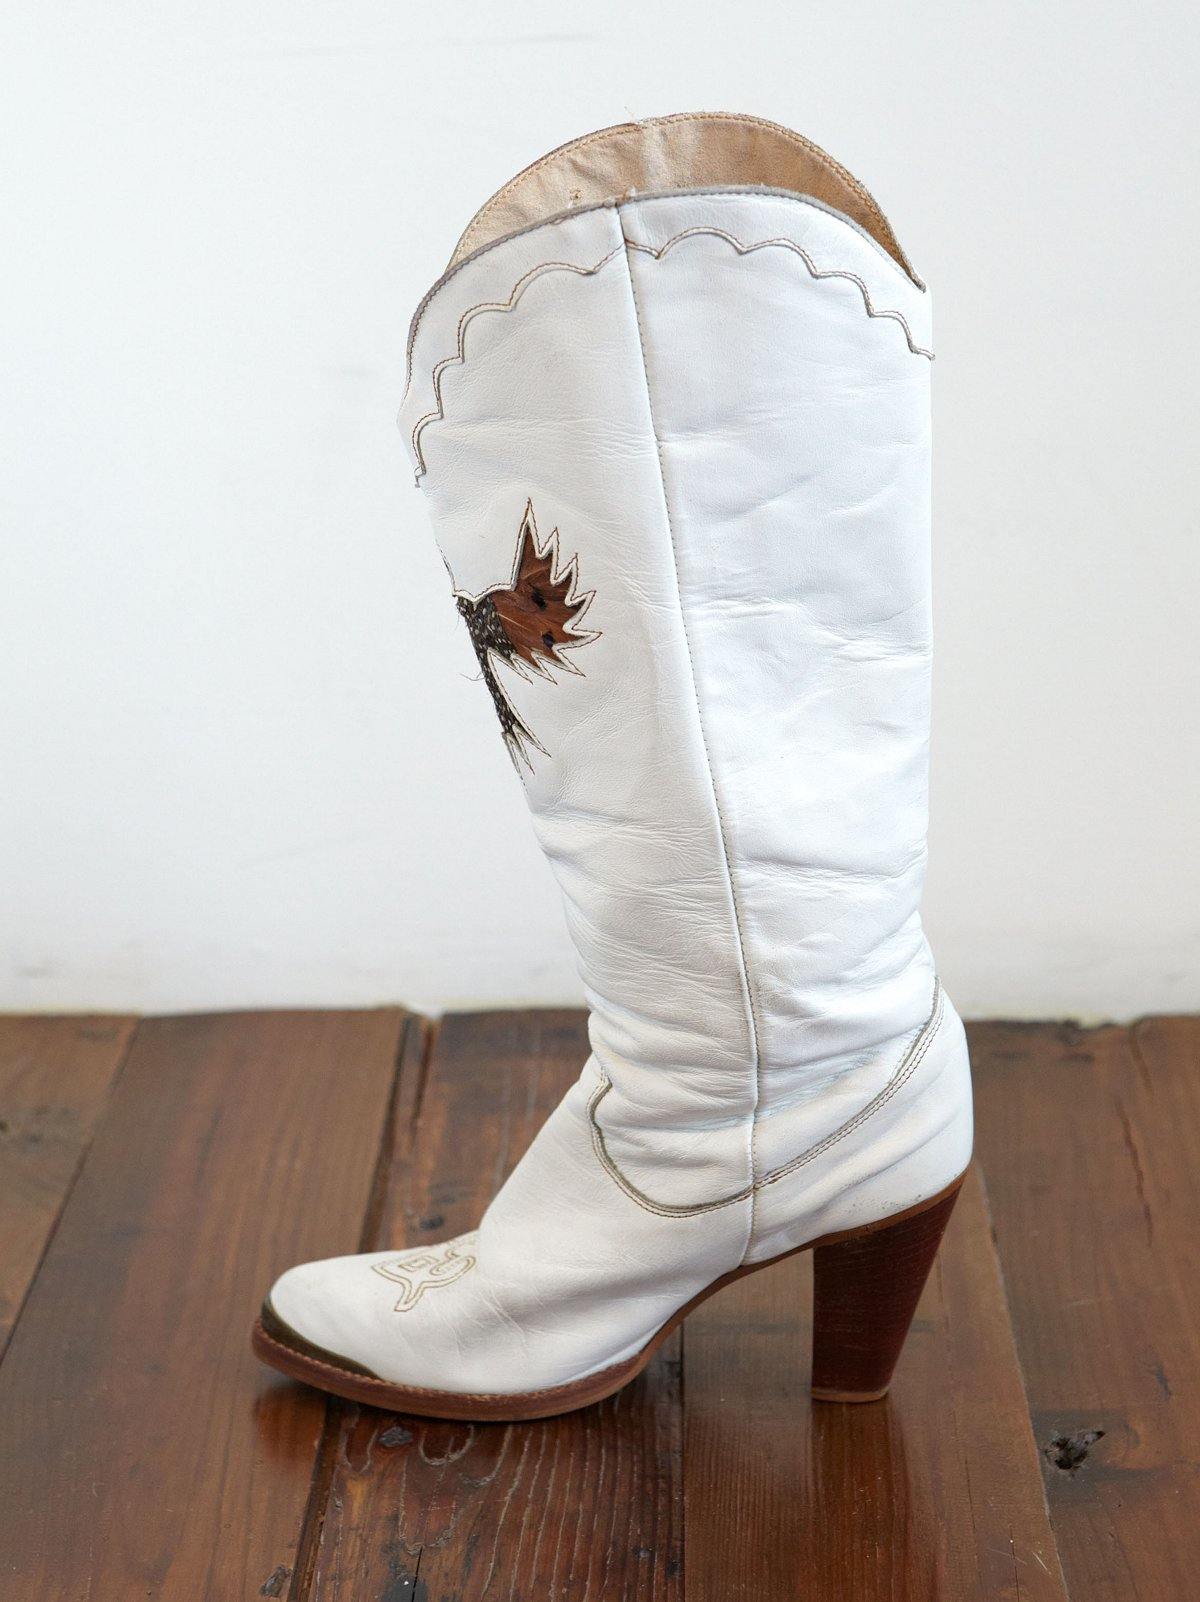 Vintage White Leather Cowboy Boots